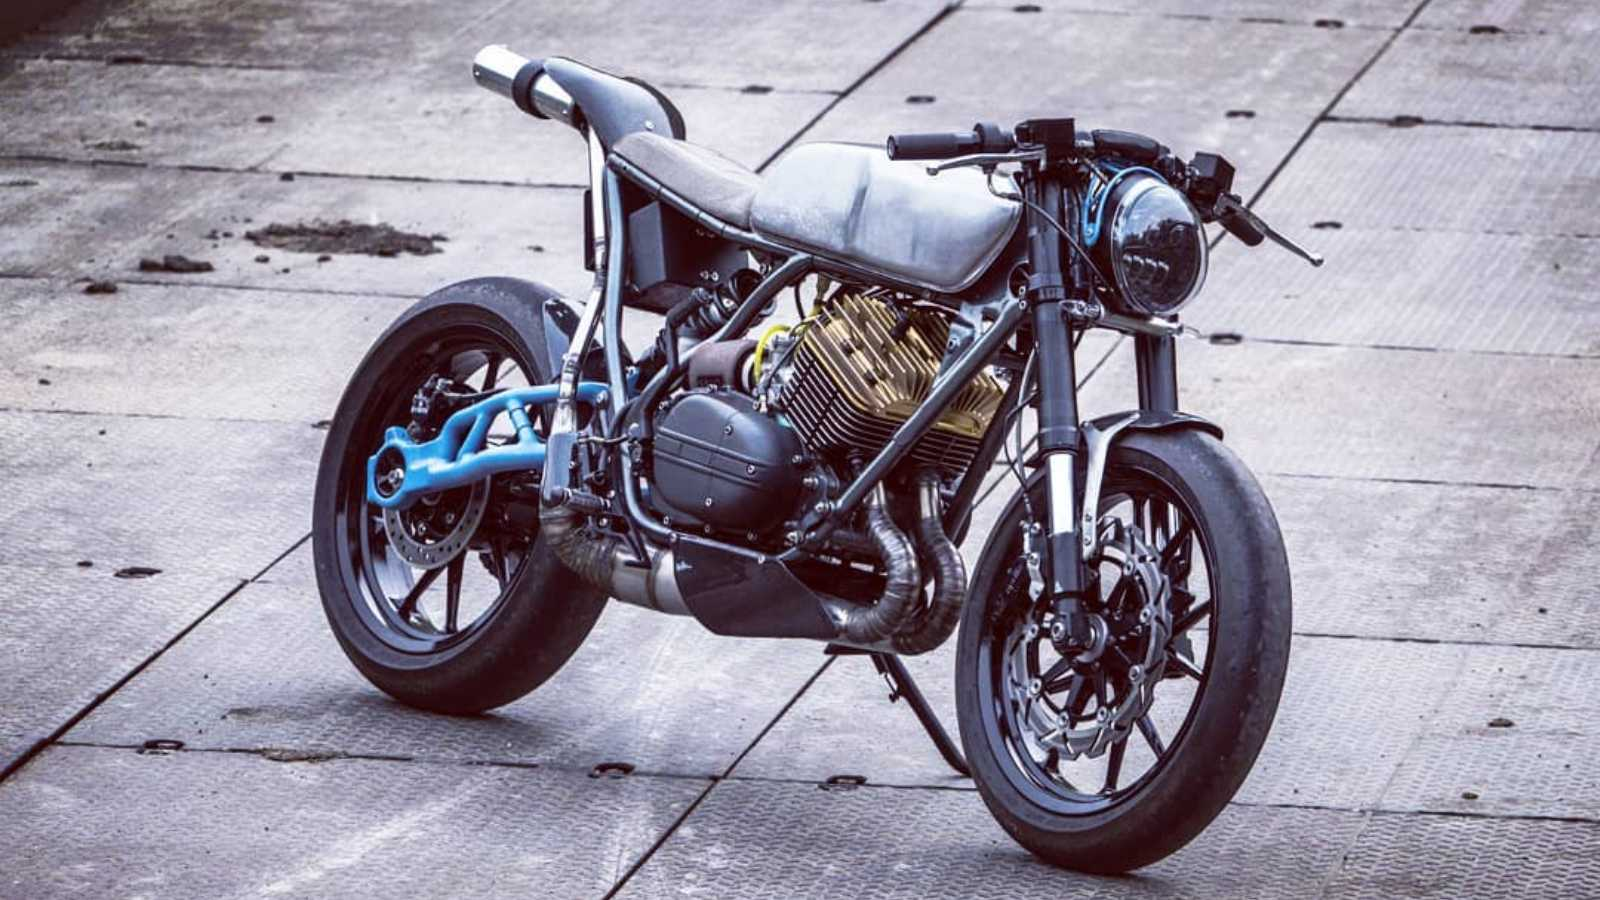 This Yamaha Rd 350 Based Cafe Racer Will Make Your Heart Skip A Beat Motoroids